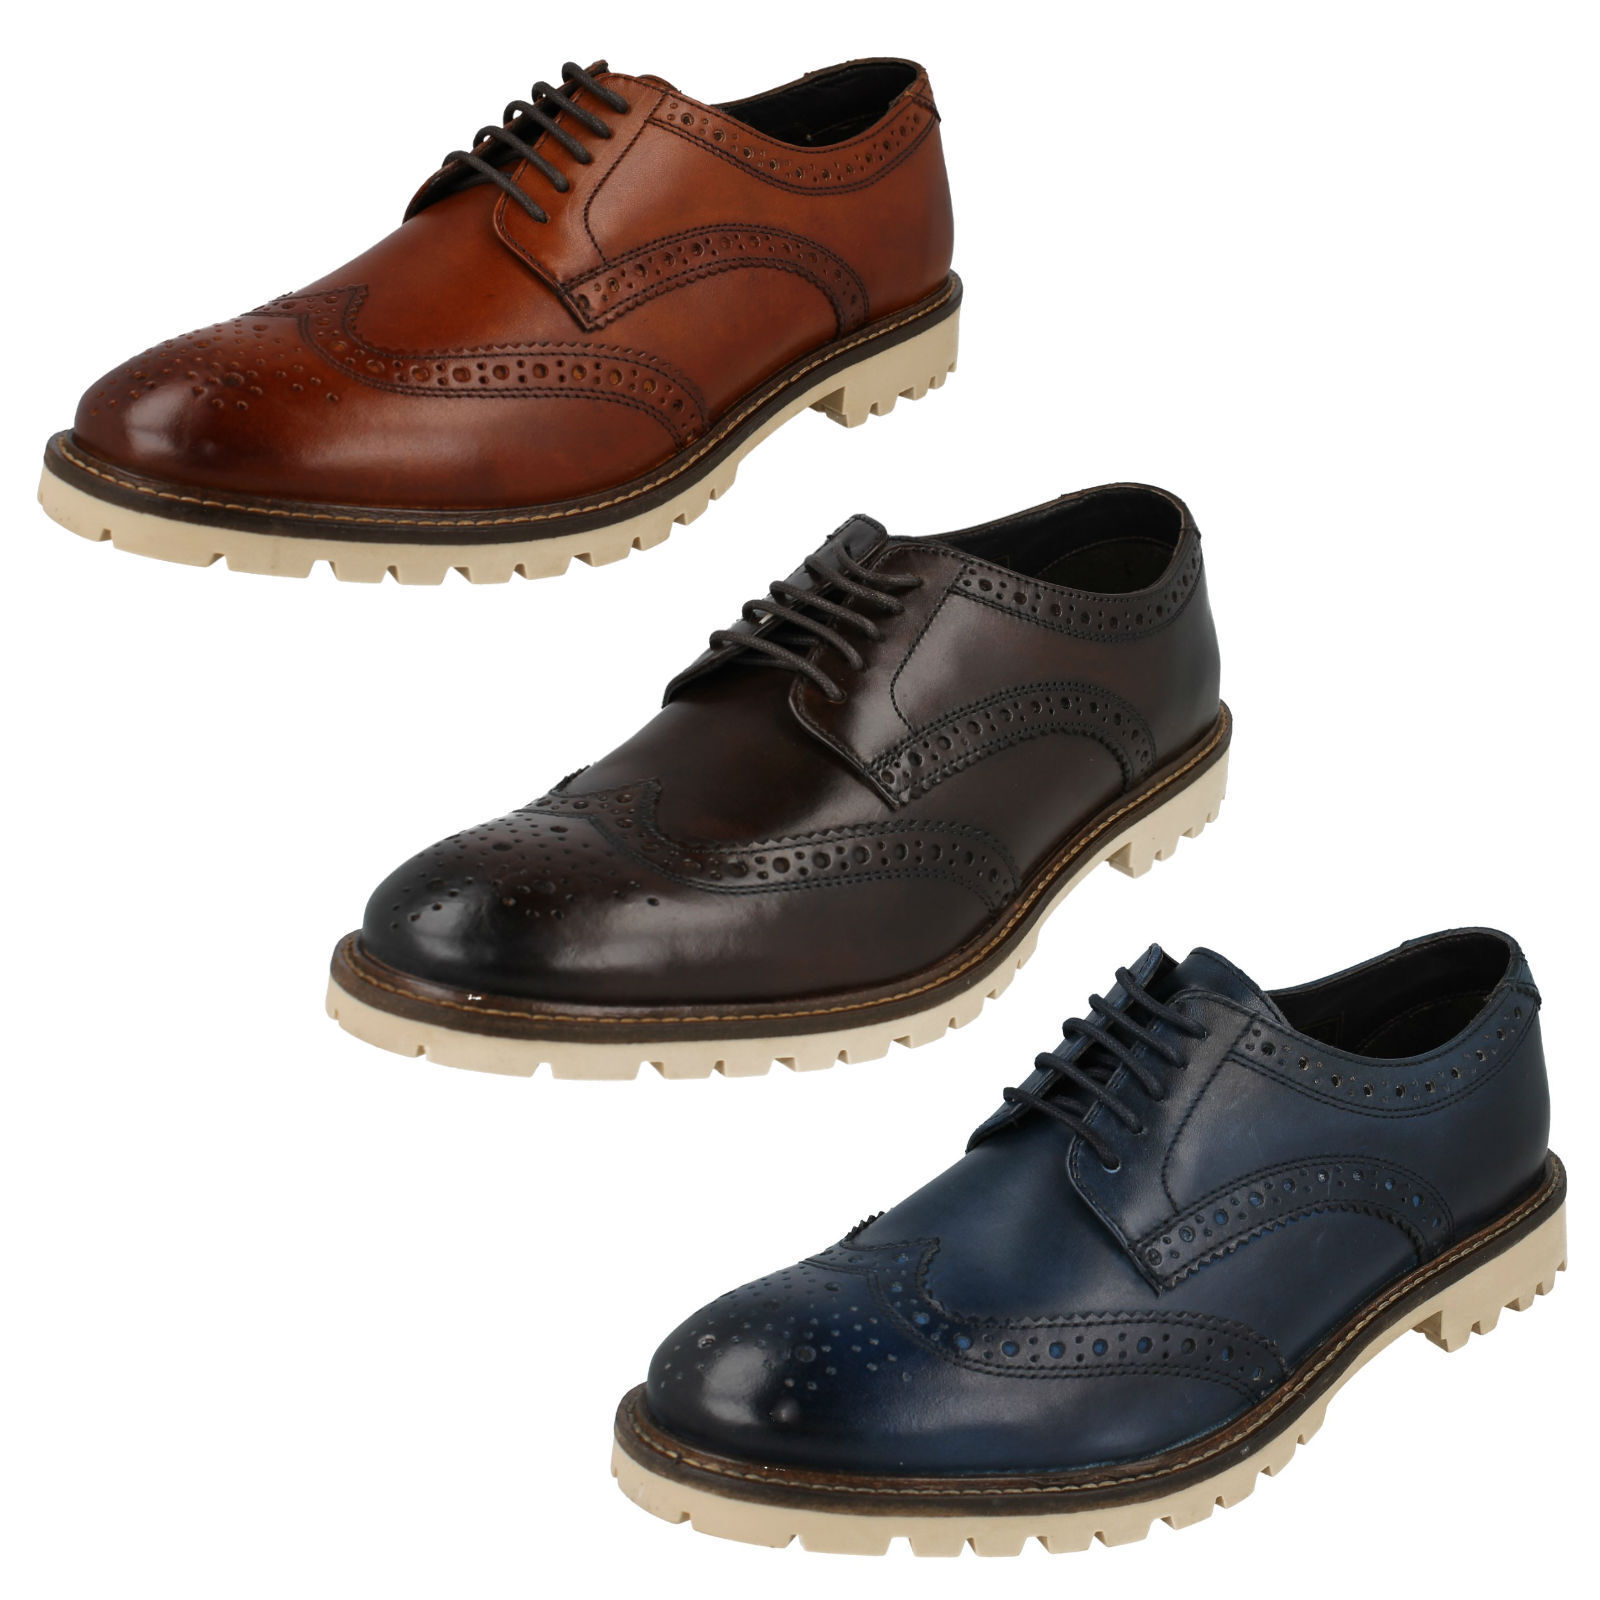 0a2833d67 MENS BASE LONDON RAID BROGUE LACE UP SMART FORMAL WORK OFFICE LEATHER SHOES